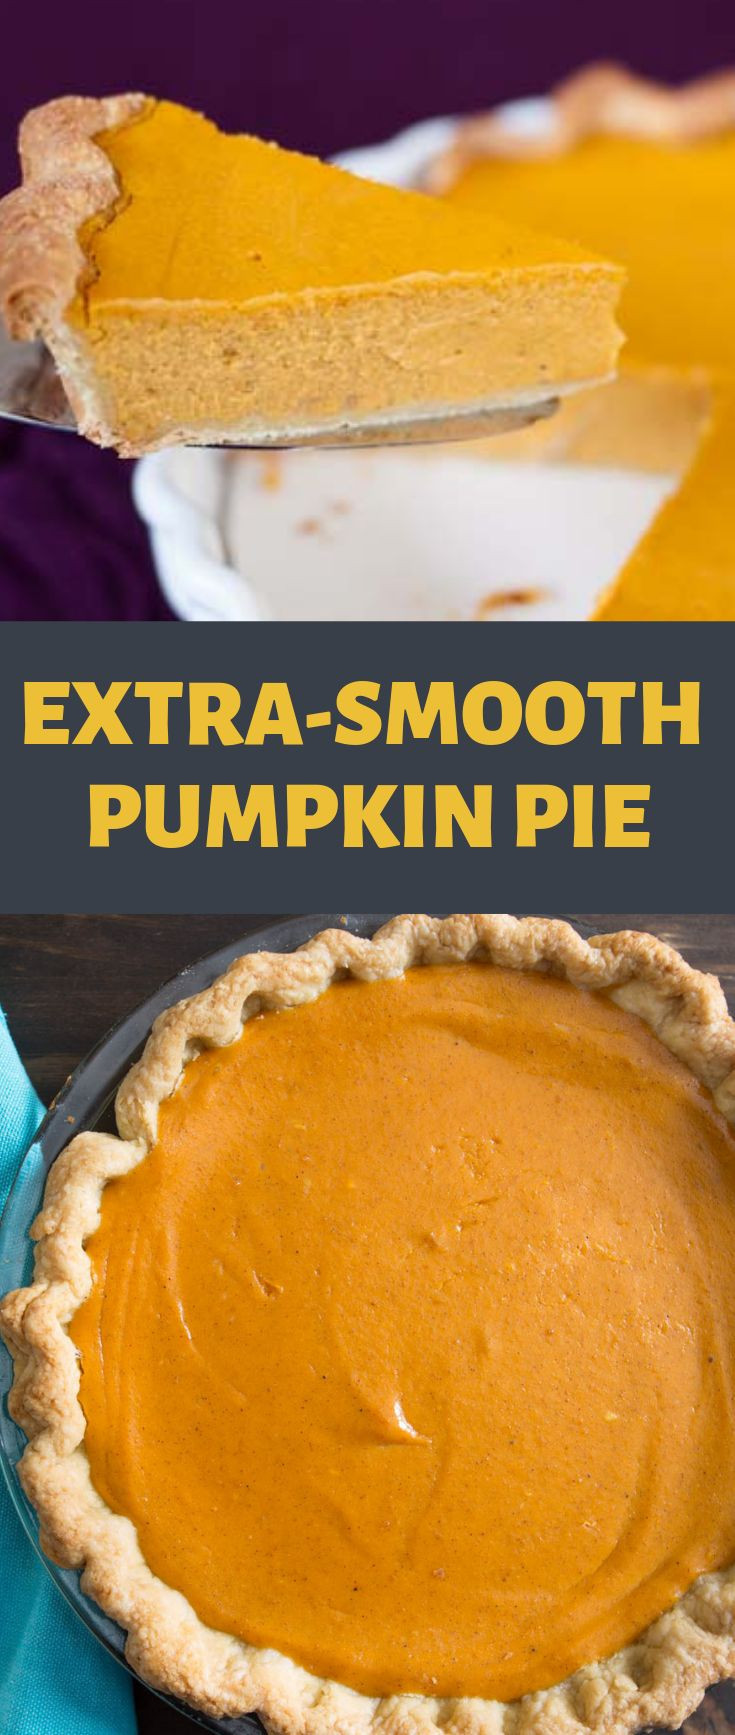 Popeyes Fried Turkey Thanksgiving 2019  Extra Smooth Pumpkin Pie Recipe in 2019